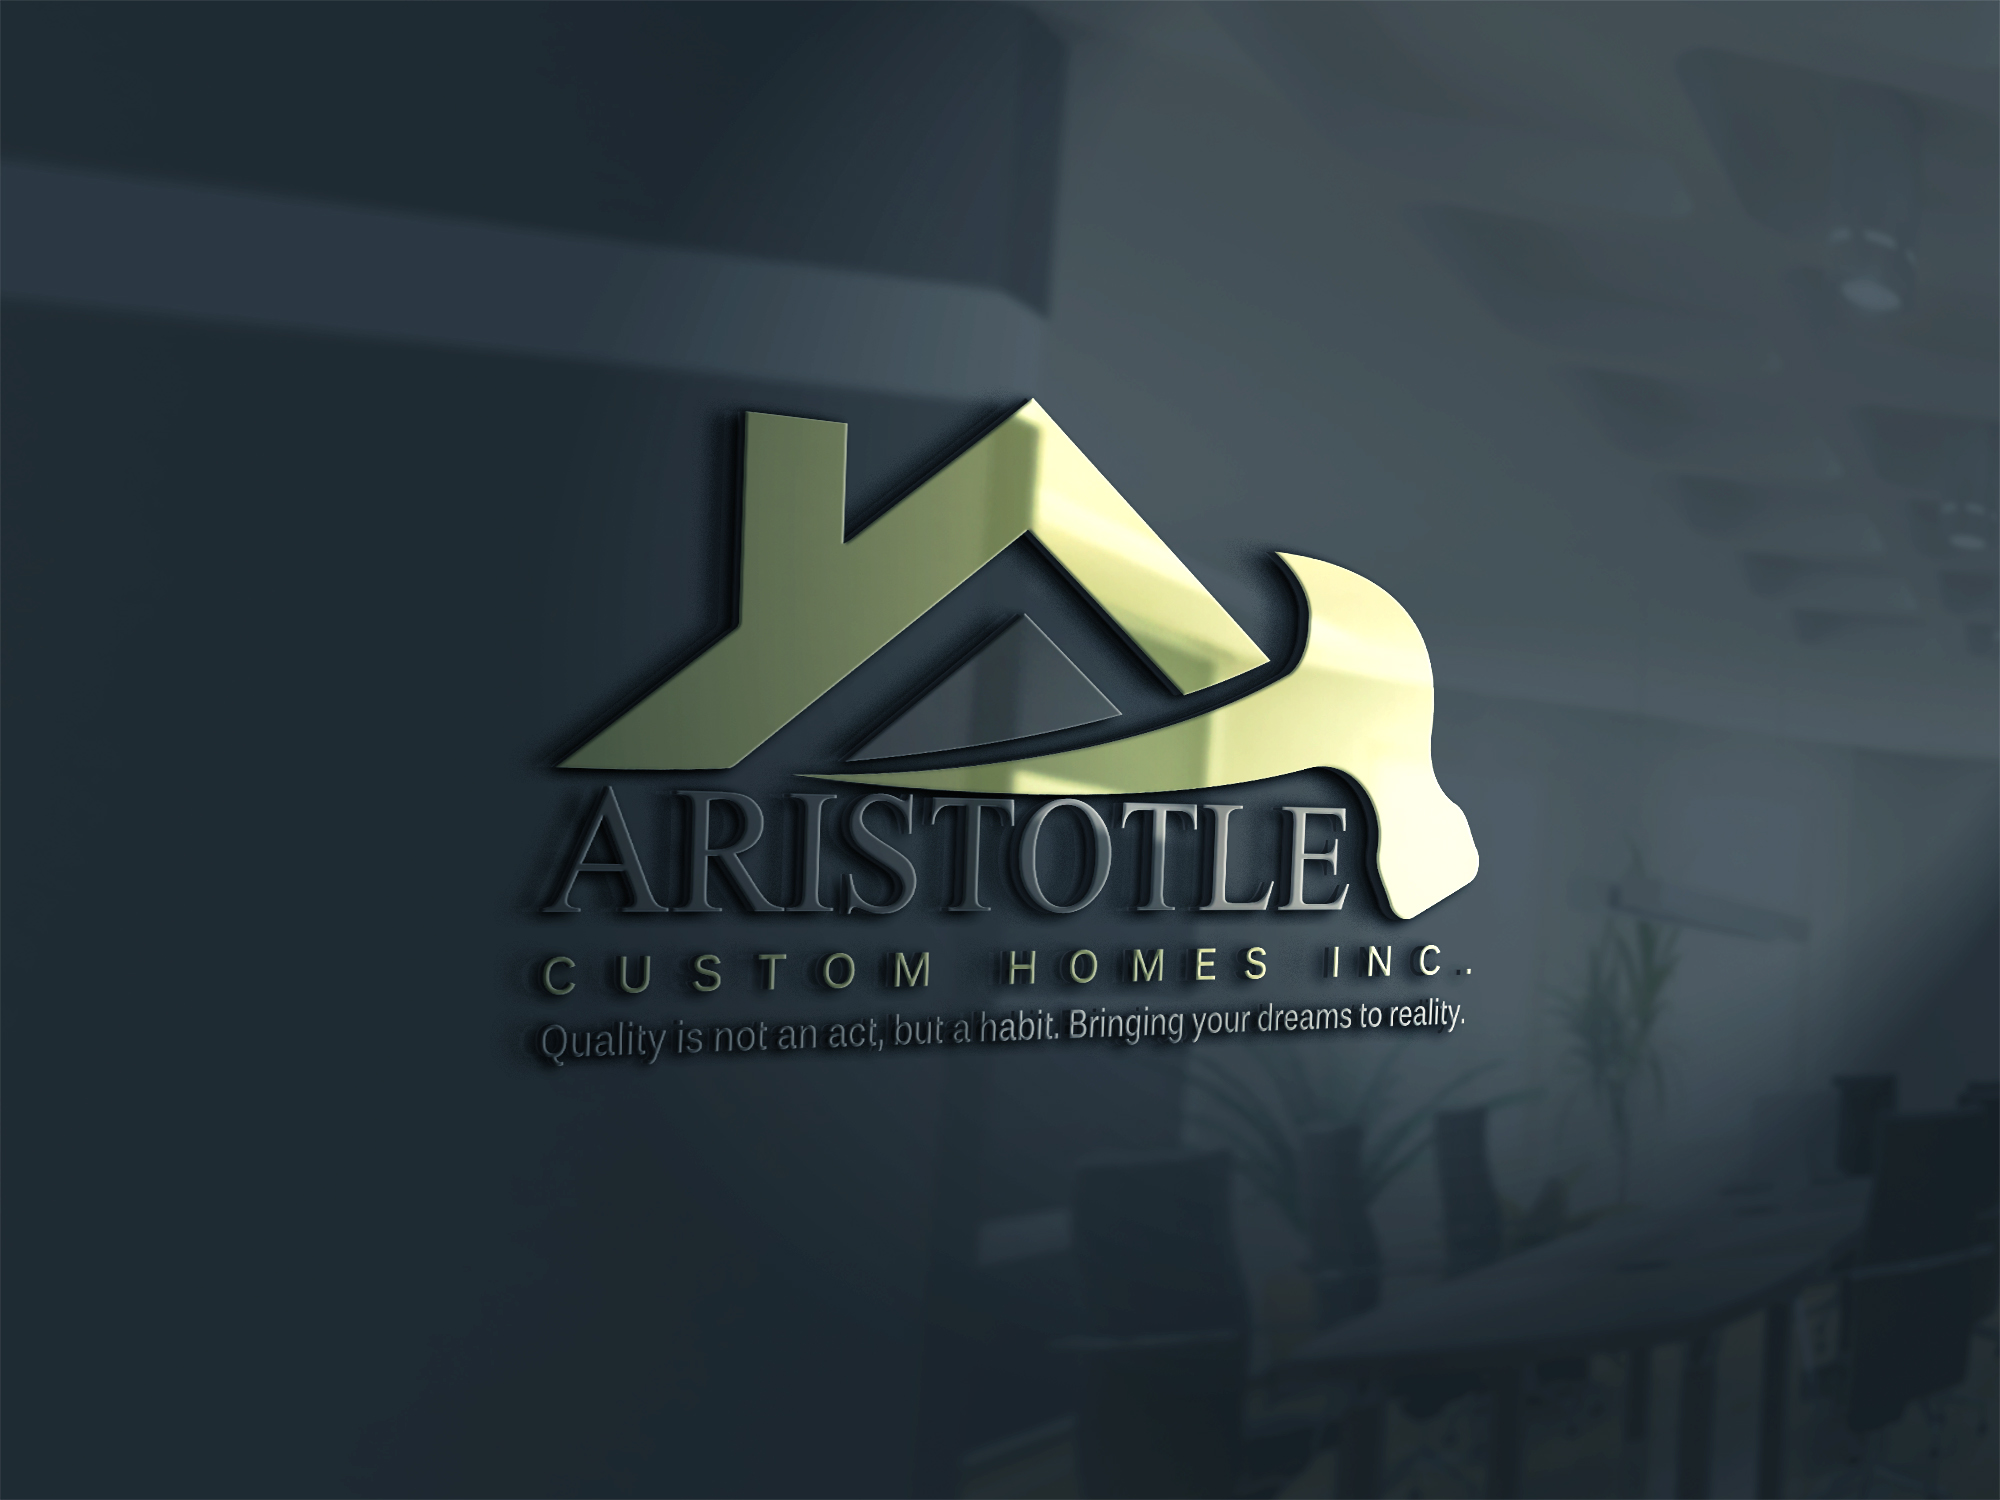 aristotle custom homes, quality is not an act but a habit, bringing your dreams to reality, local, fort mcurray, rebuild, home builders, ft mcmurray, fire, trust, contrusction, residential